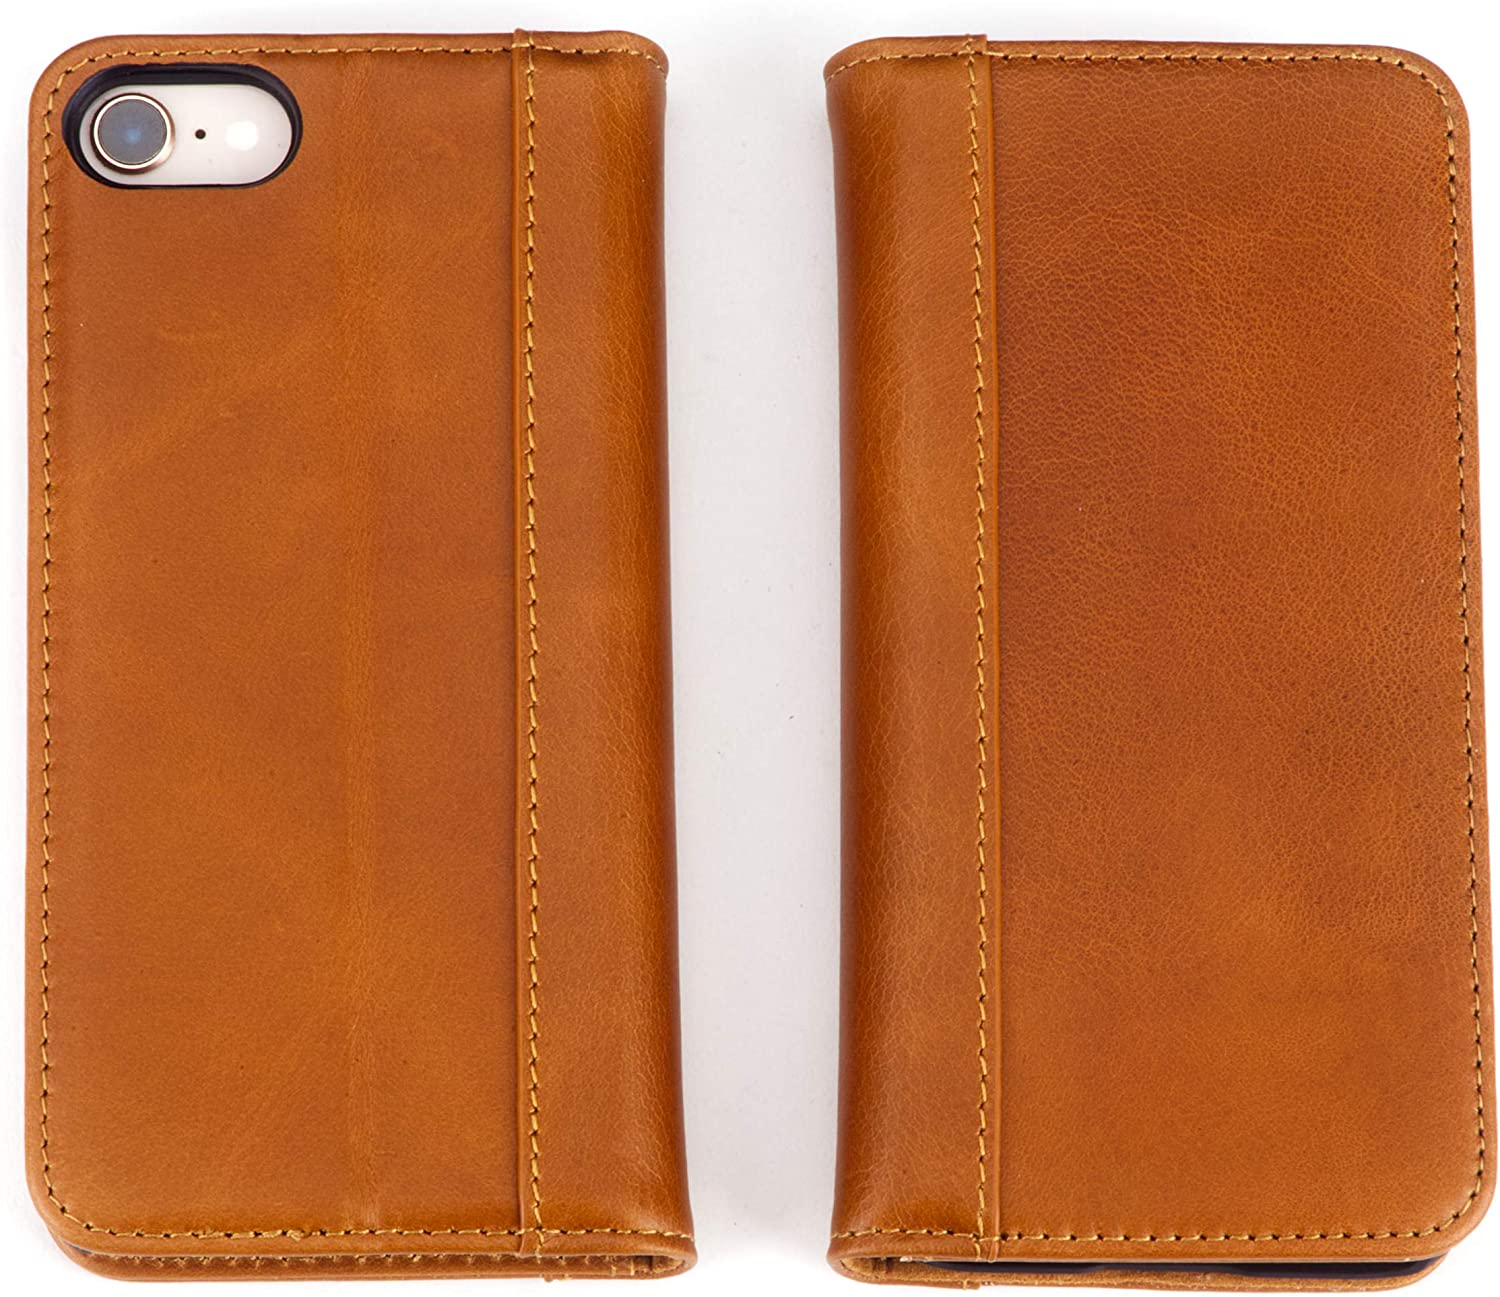 iPhone 8, iPhone 7 (Does NOT fit Plus) by Cherry Tree Leather | Genuine Top-Grain Leather Wallet Case with 4 ID or Card Slots, Stand, and Magnetic Closure | Men and Women (Bourbon Brown)